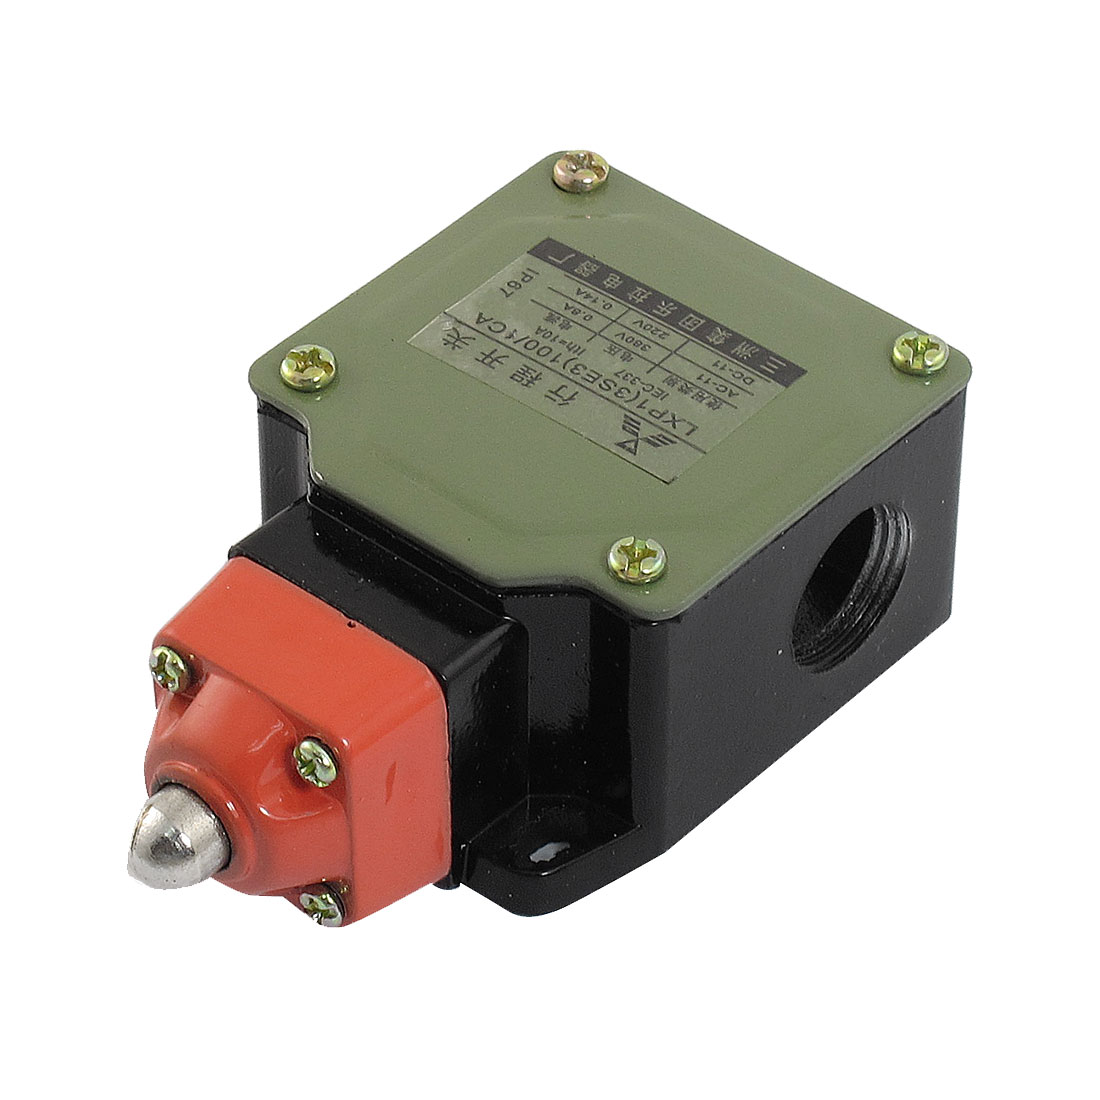 0.14A 220VDC 0.8A 380VAC 1NO 1NC SPDT Momentary 3 Hole Push Plunger Limit Switch